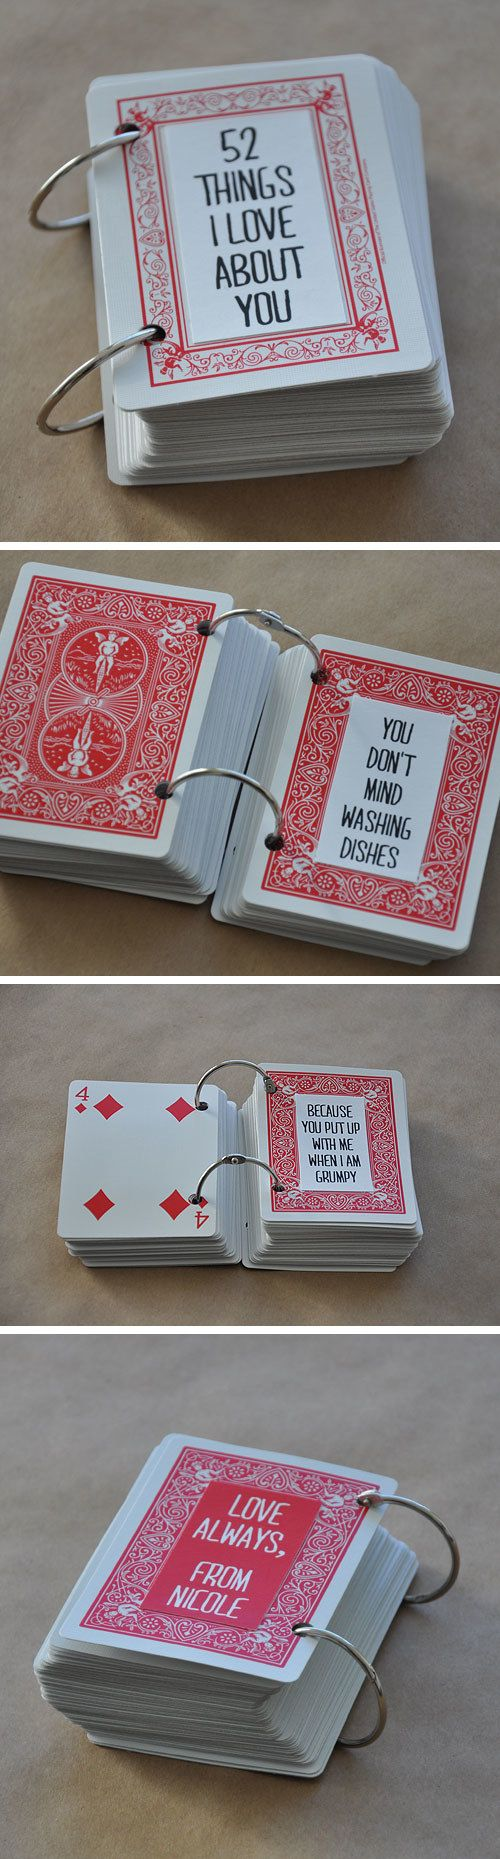 A personalized deck of cards that's a super thoughtful gift you can whip together at a moment's notice.